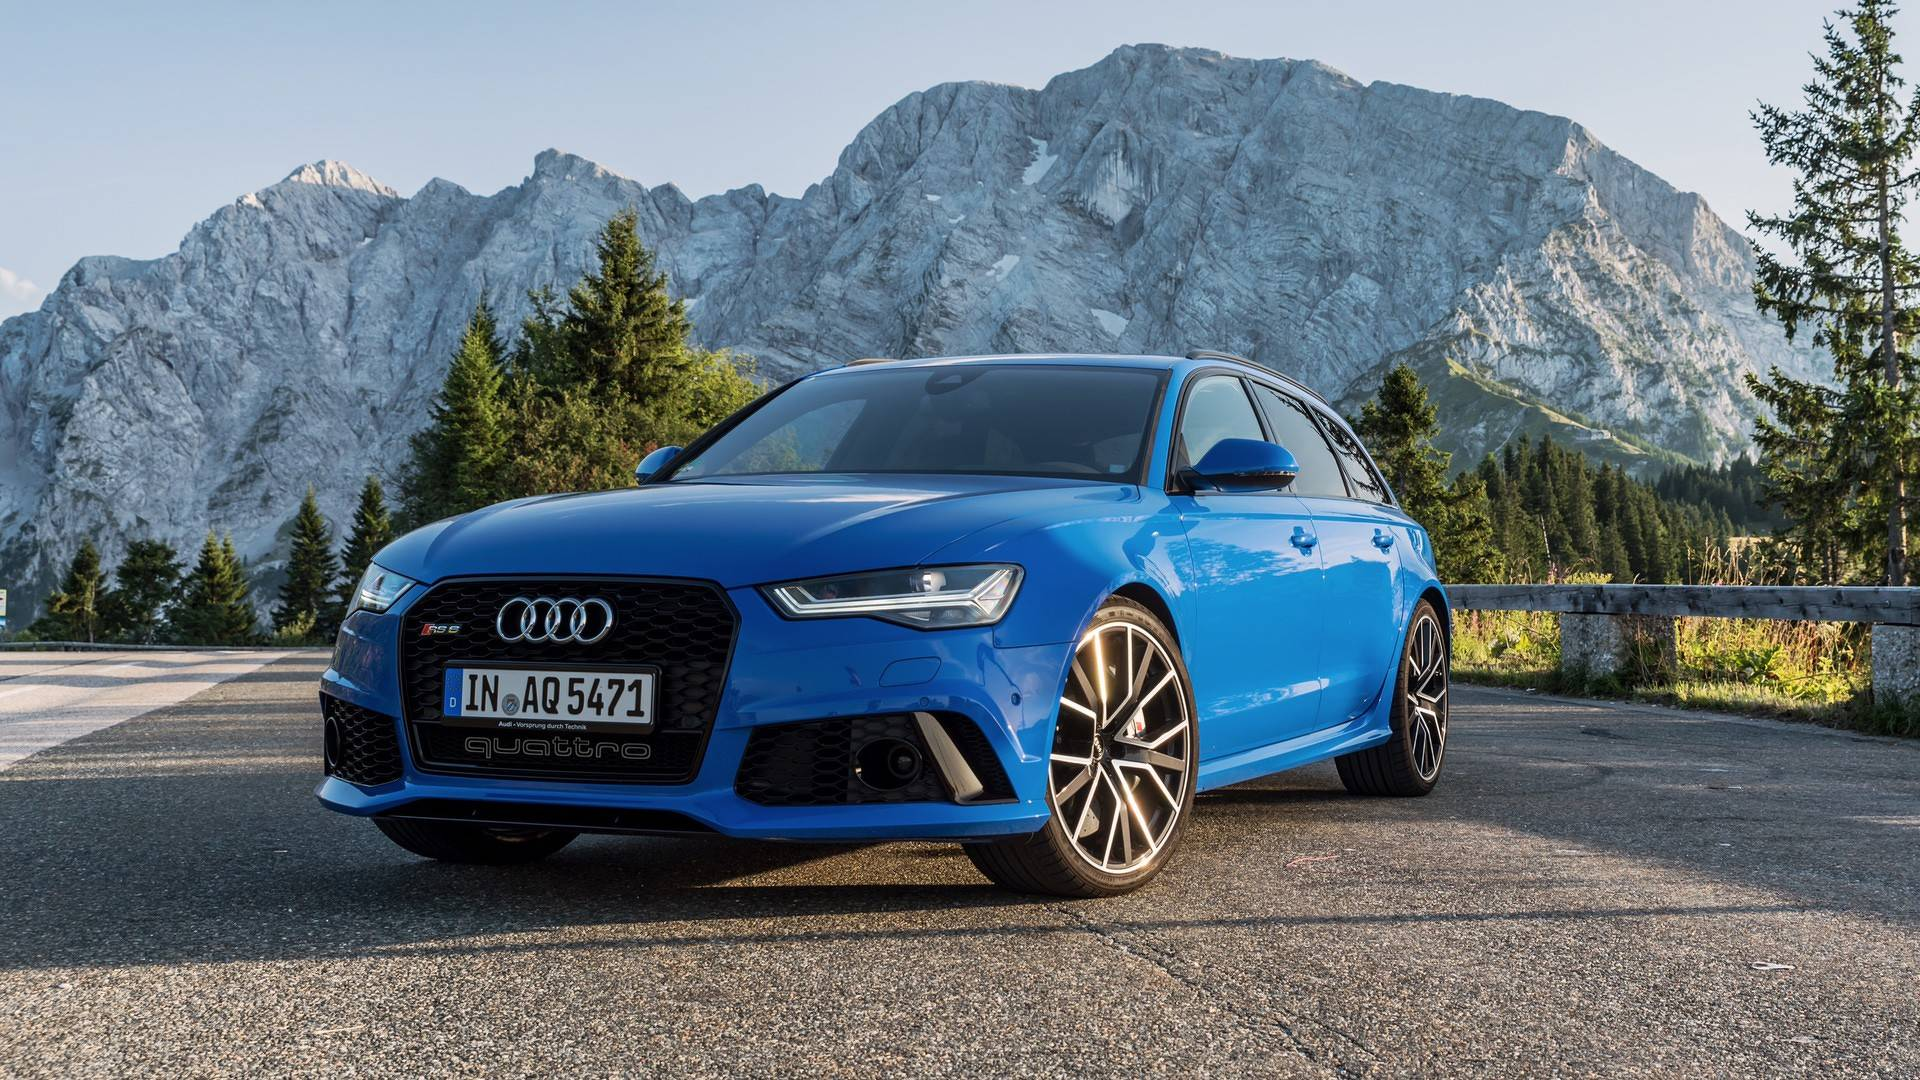 best wagon station reviews info htm out looking performance wagons audi olympicnocpins there car